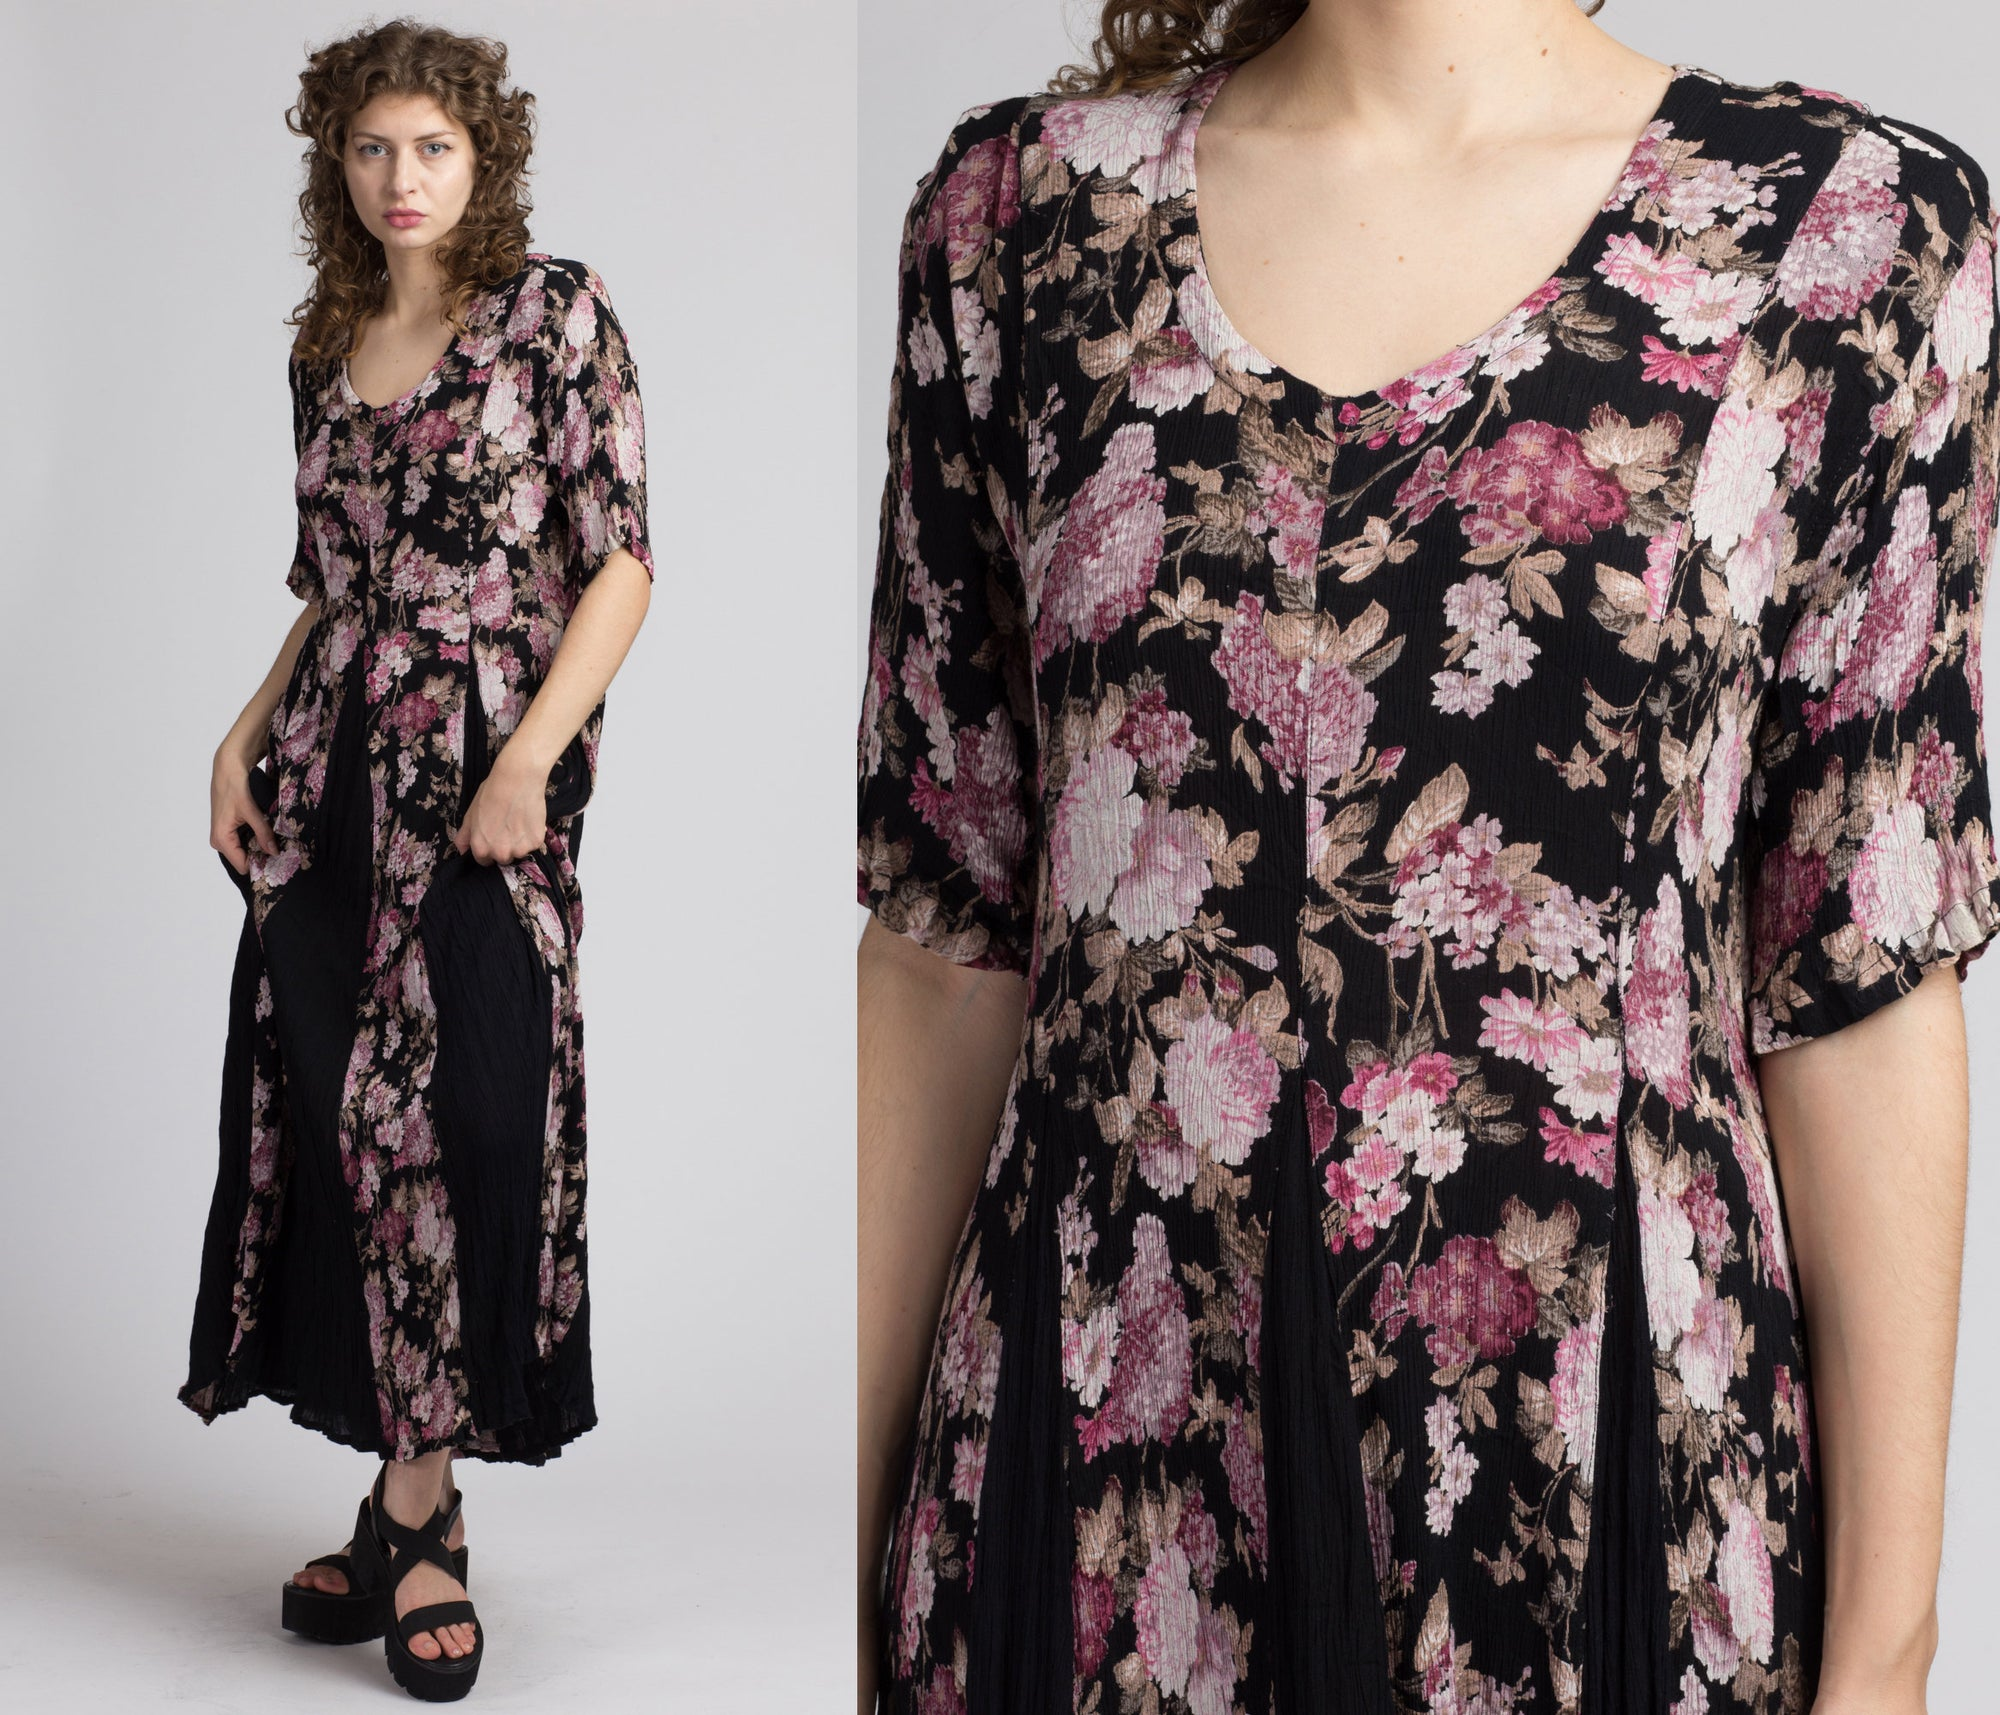 90s Boho Black Floral Maxi Dress - Large